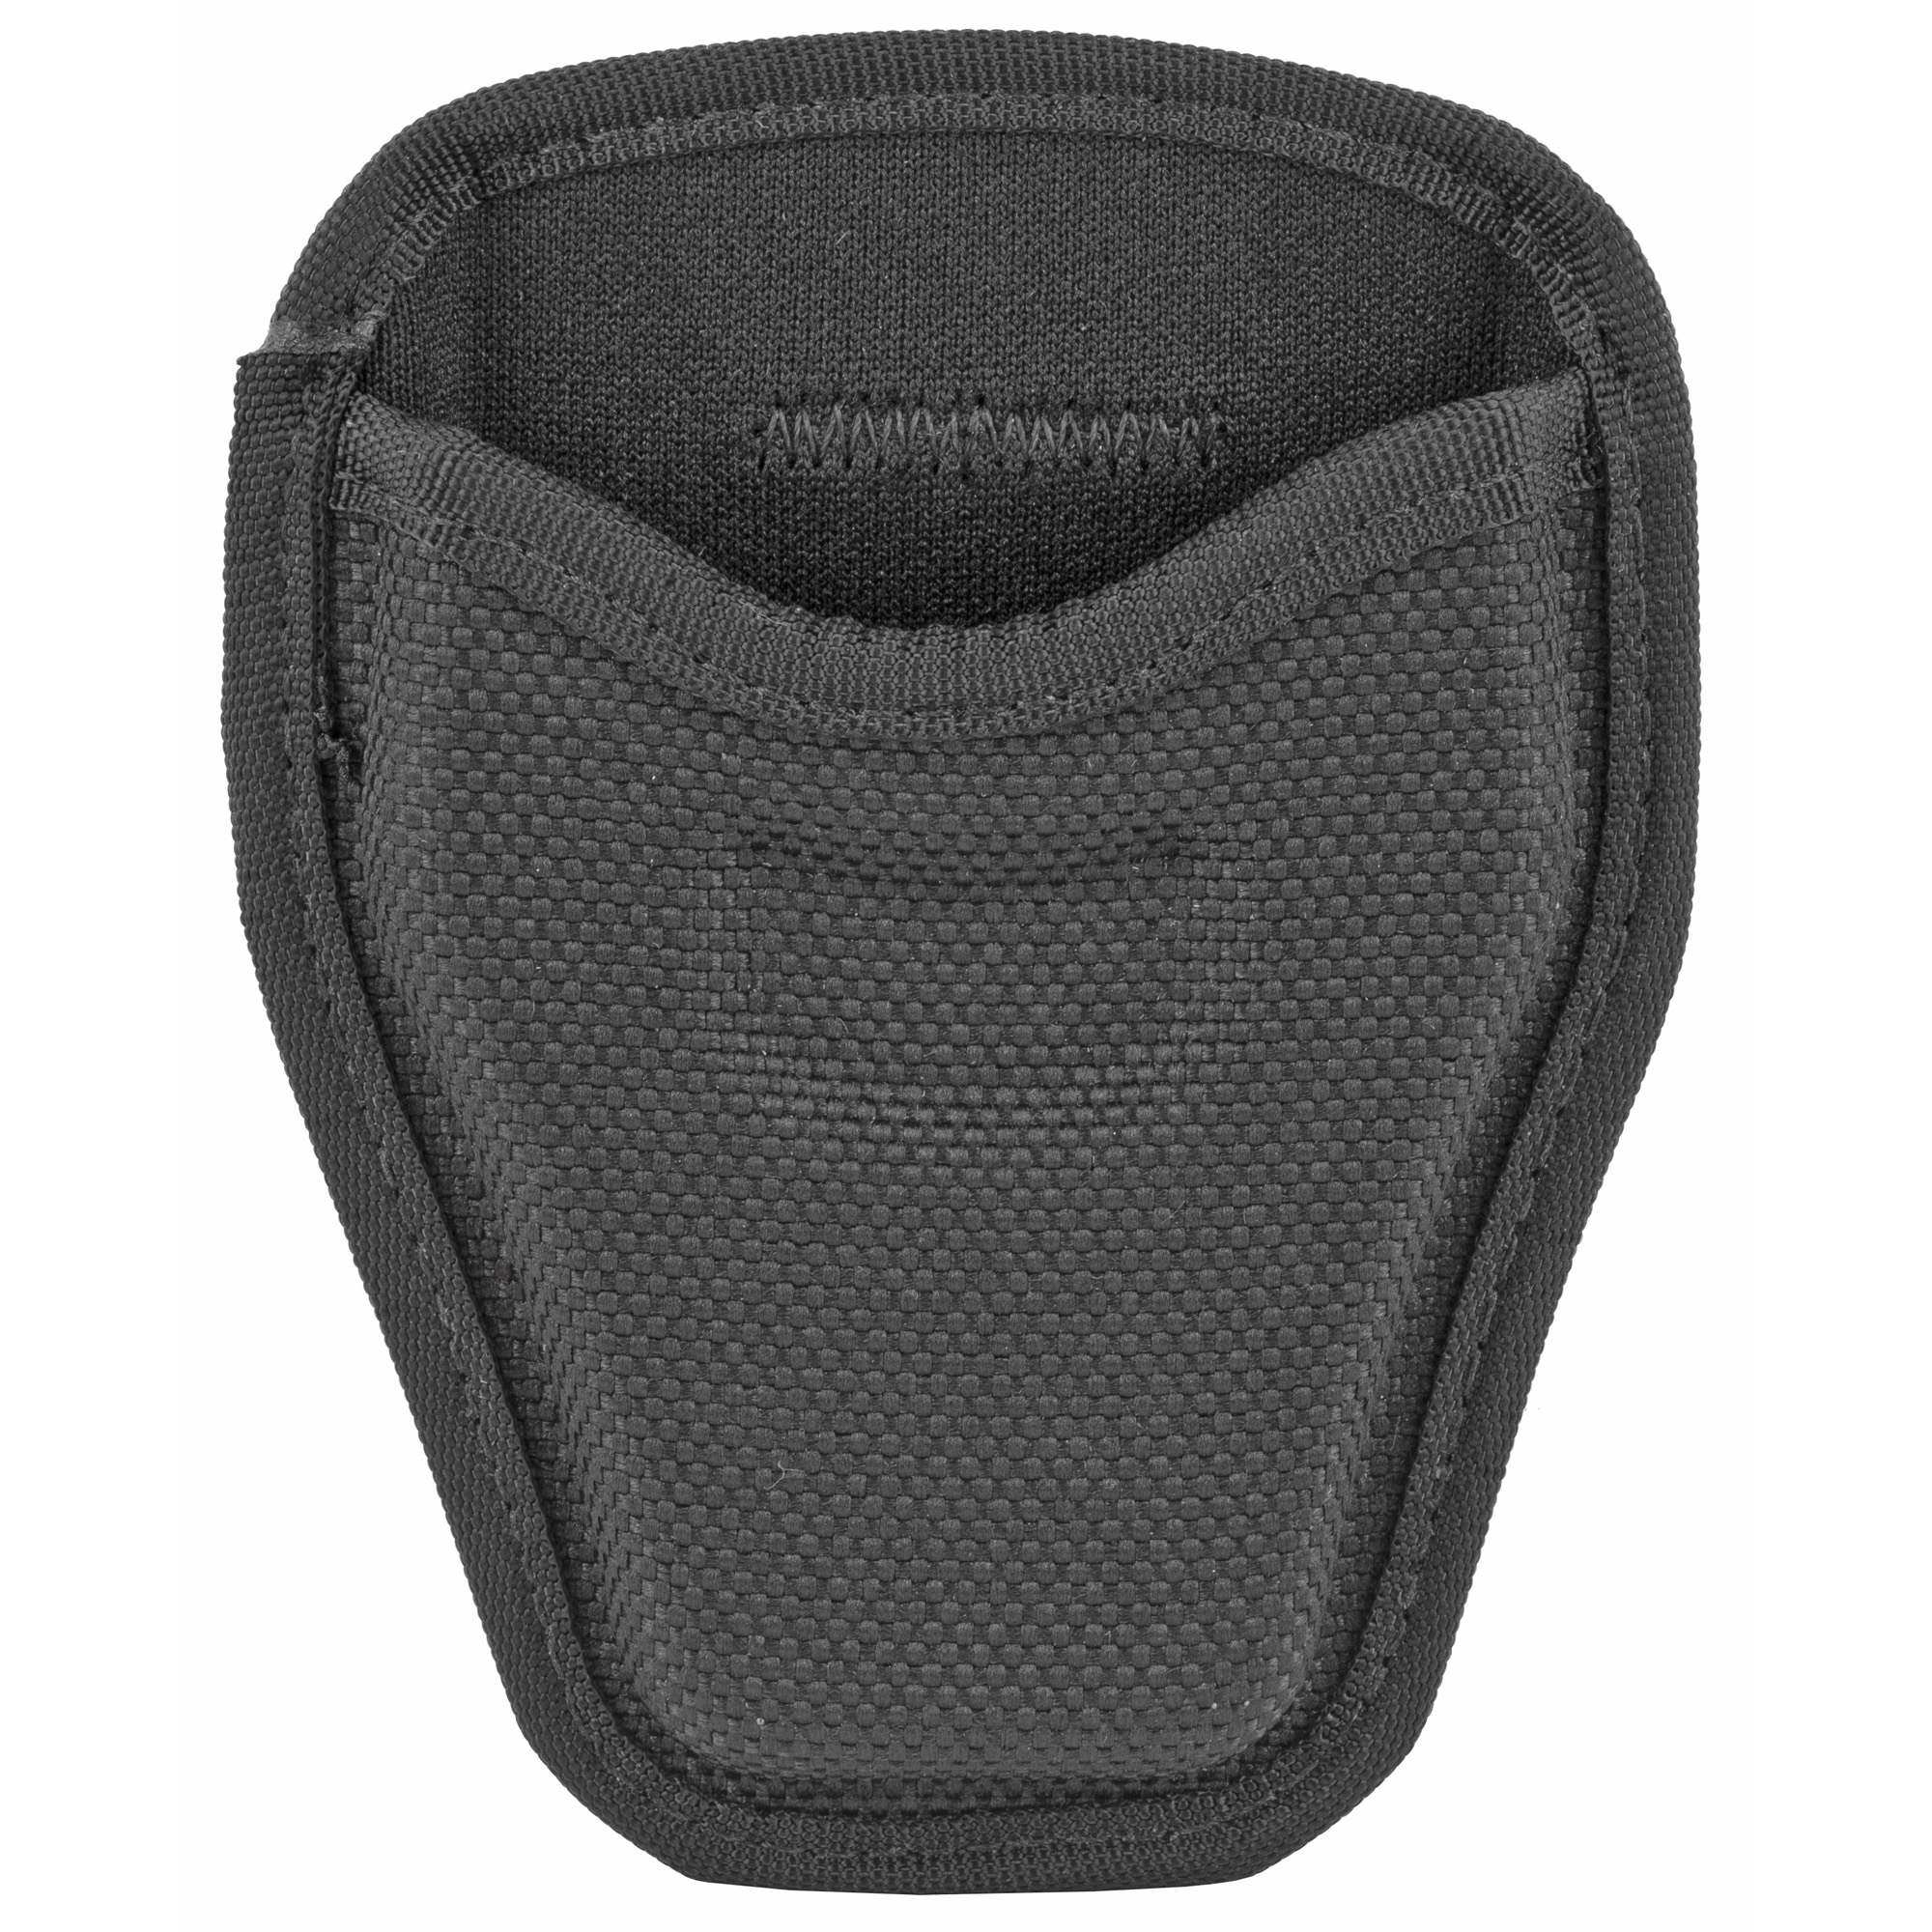 The Model 7334 AccuMold(R) Open Handcuff Case features a pull through style for easy access to the cuffs. Made of AccuMold(R) trilaminate construction with ballistic weave exterior and Coptex(TM) lining. A dual web belt loop design conveniently accommodates both 2 in. (50 mm) and 2.25 in. (58 mm) belts widths.